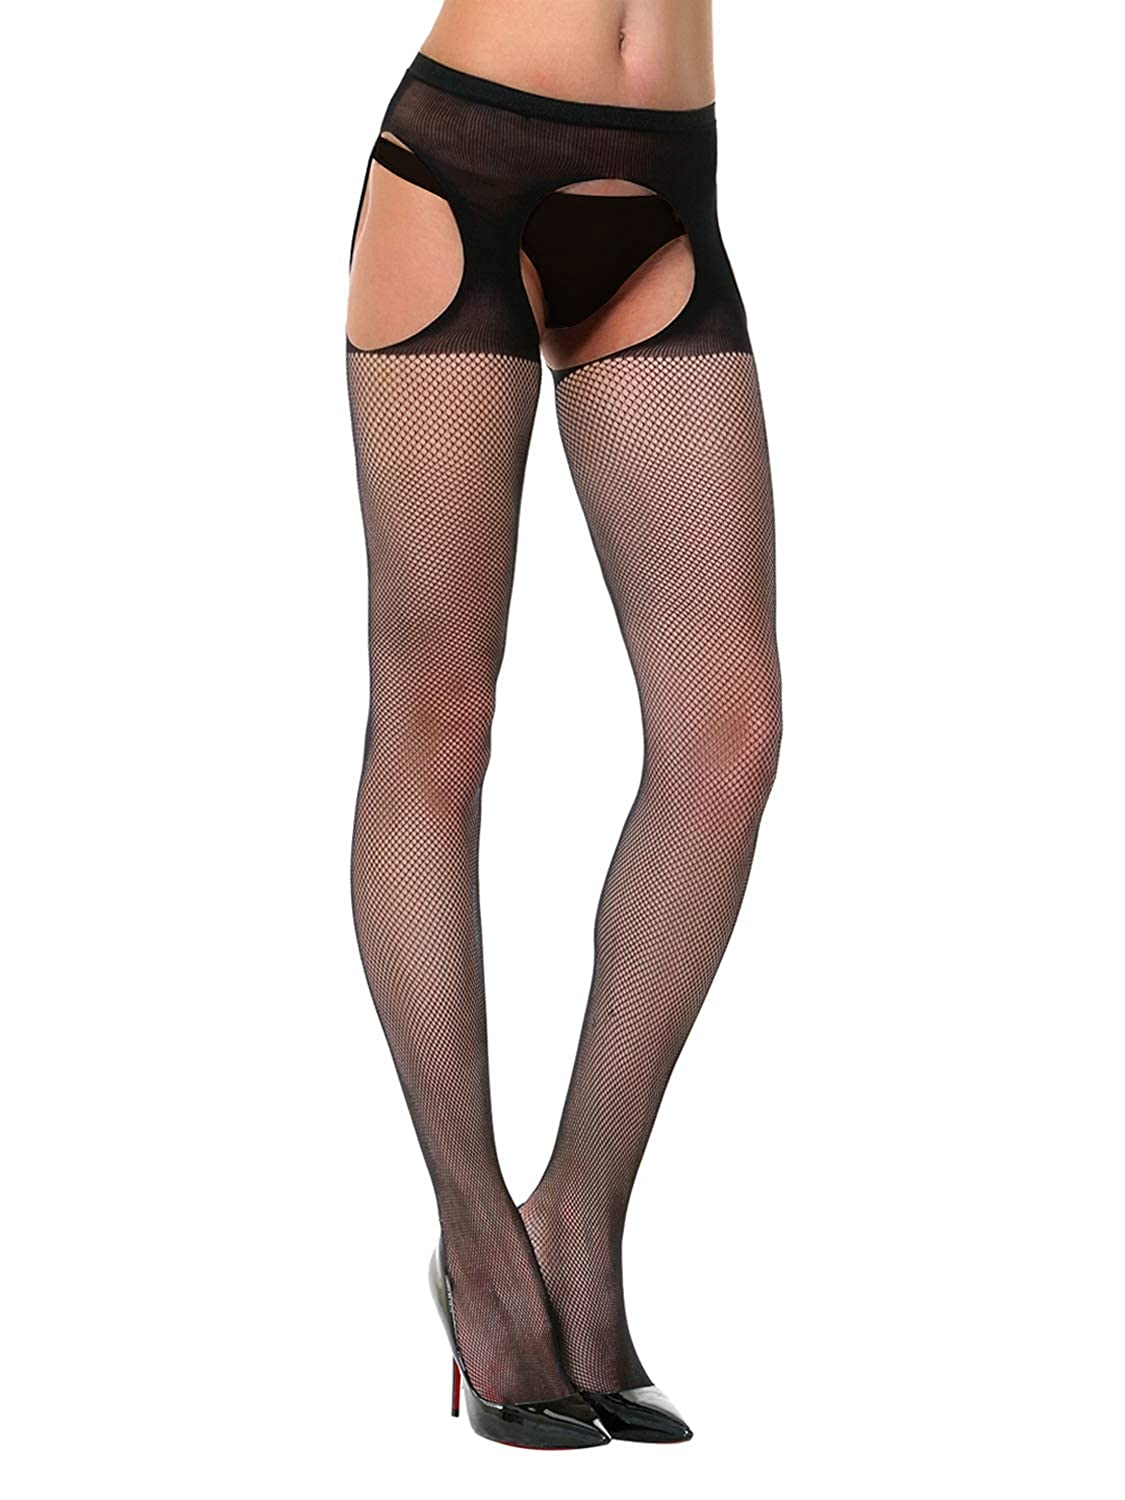 6317fba8e Amazon.com: Florboom Womens Sexy Fishnet Suspender Crotchless Tights  Pantyhose Stockings: Clothing